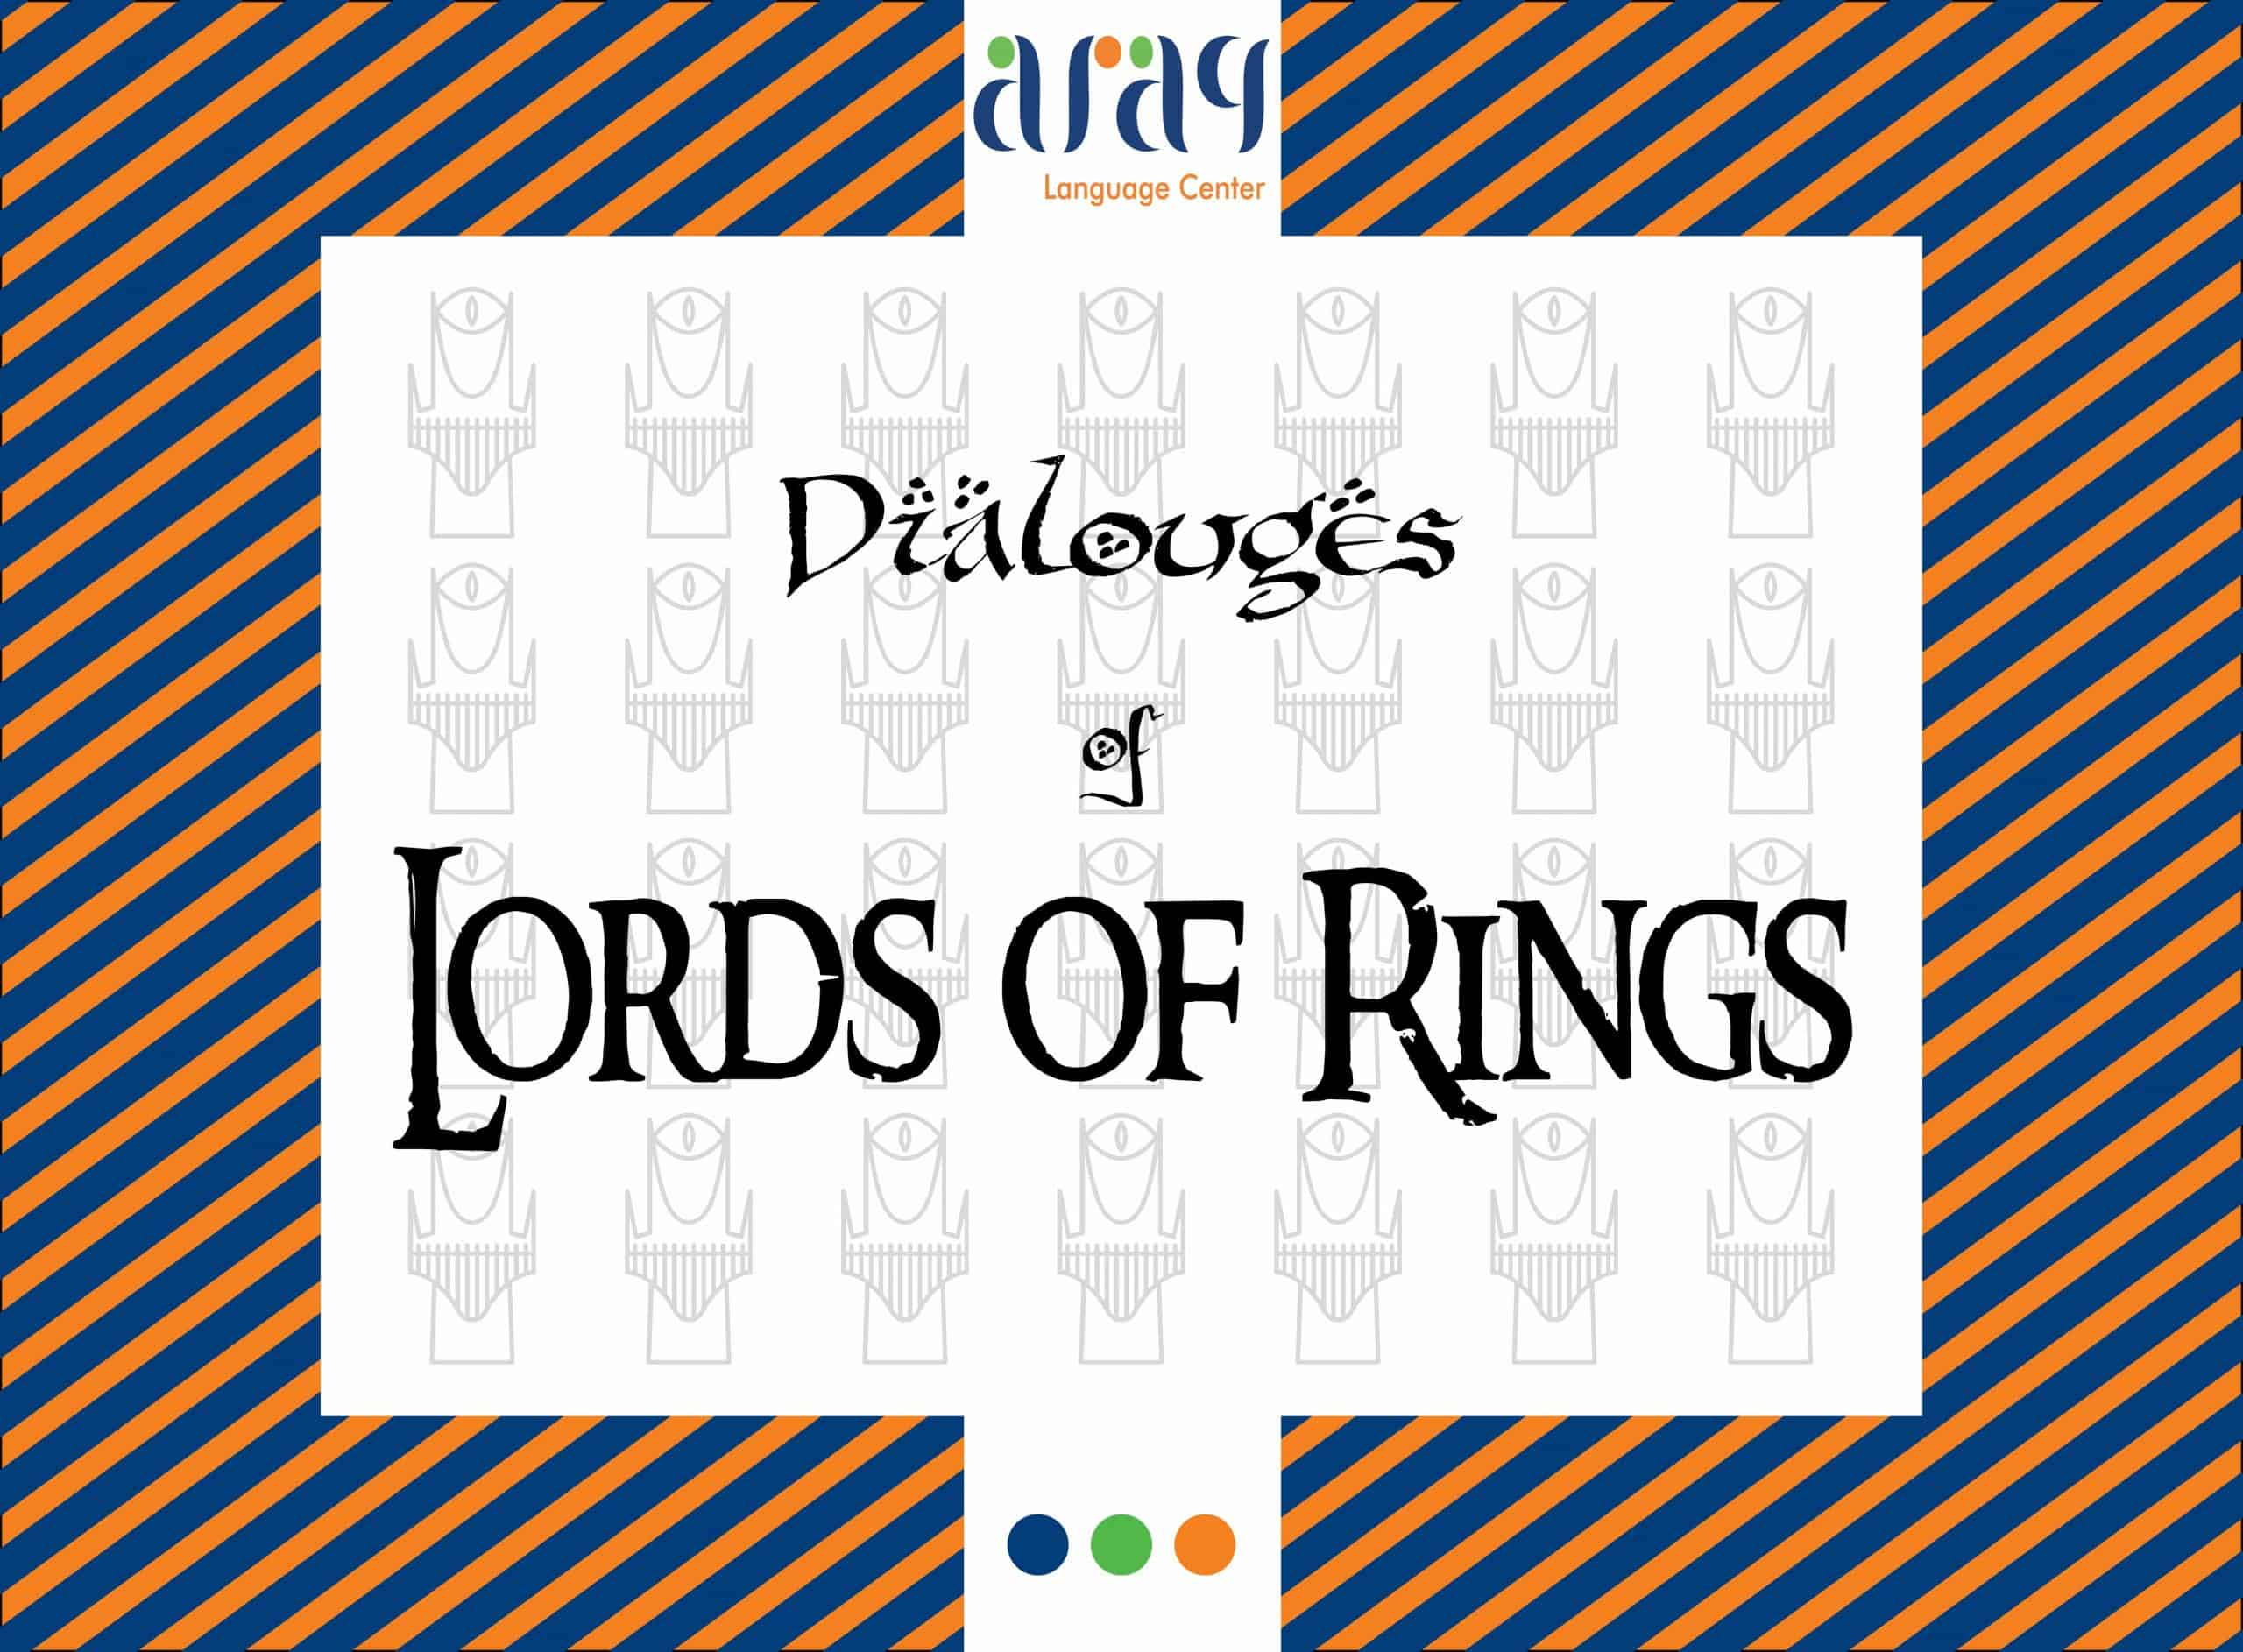 Lord of the rings ارباب حلقهها